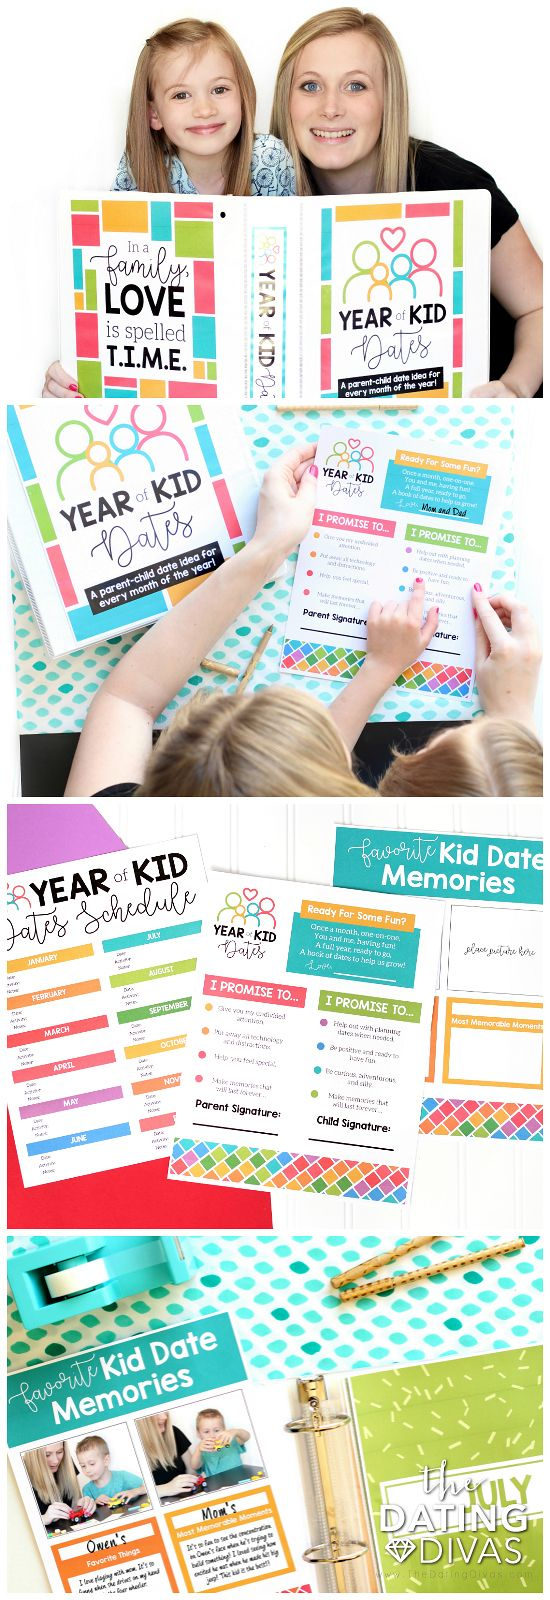 Year of Kid Date Ideas Binder- a one-on-one date with your child for every month of the year!! This is AWESOME! The perfect birthday or Christmas gift that is actually meaningful. What a great way to make memories!